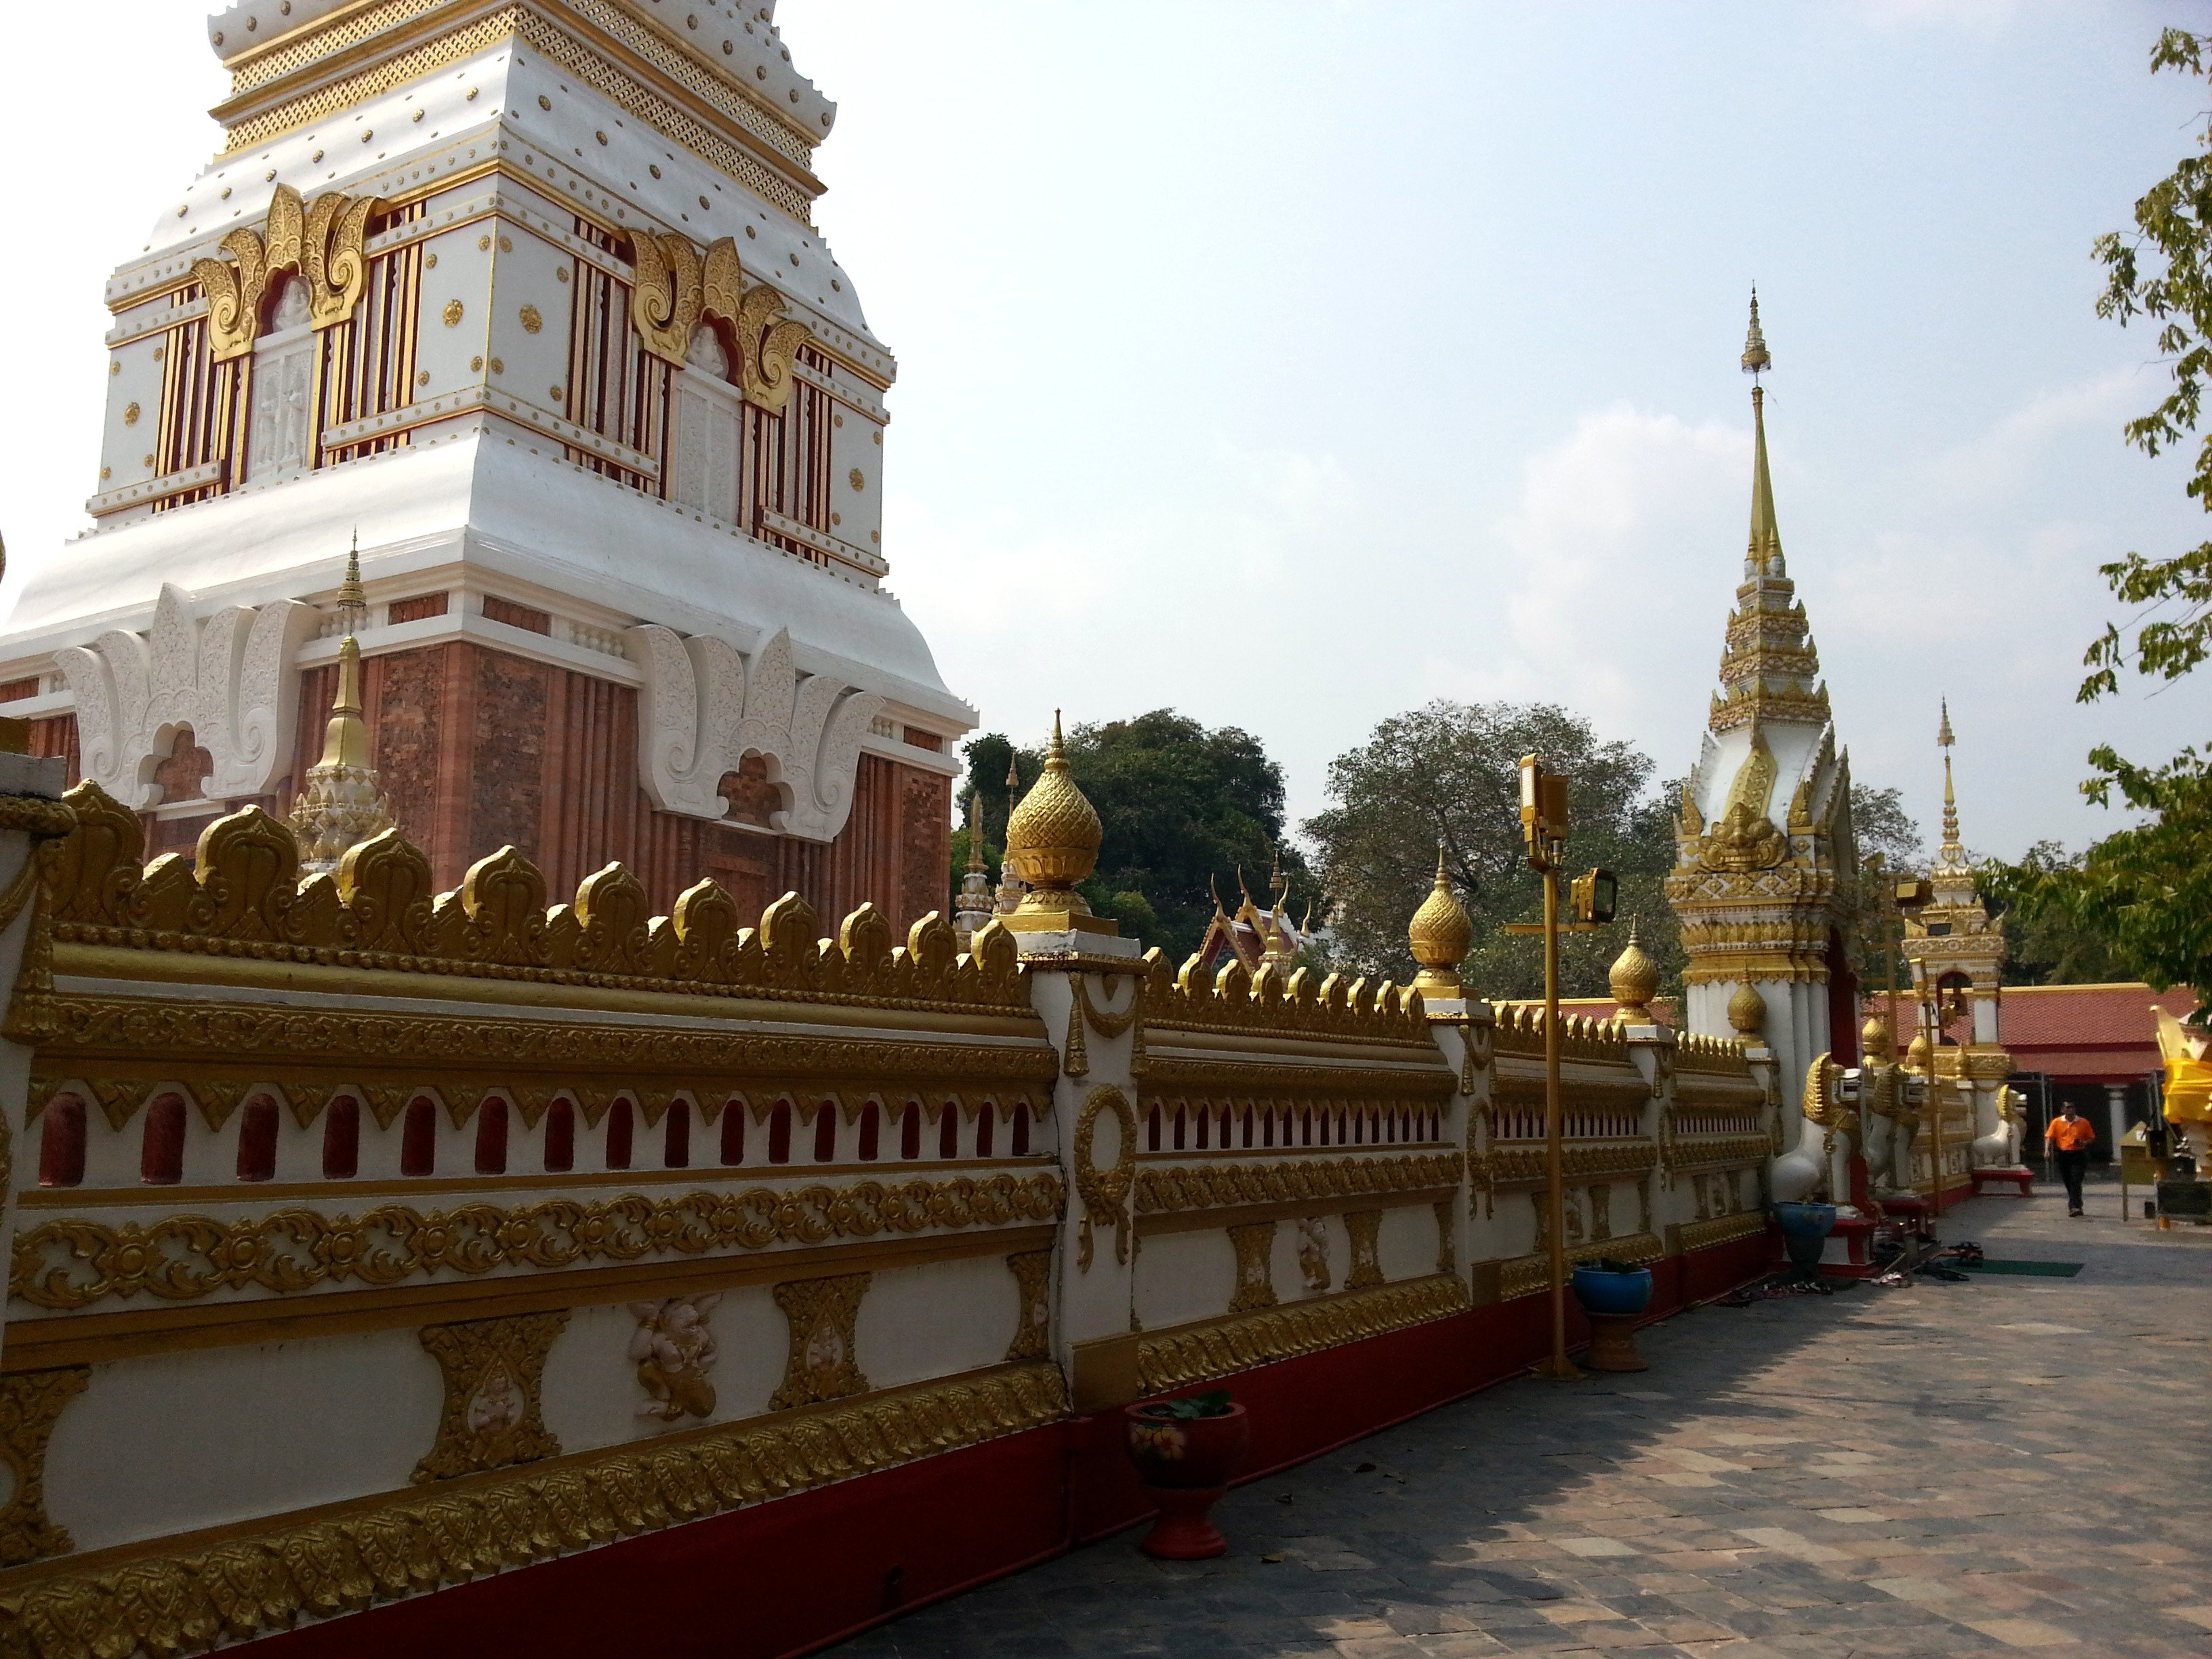 Wall around the chedi at Wat Phra That Phanom